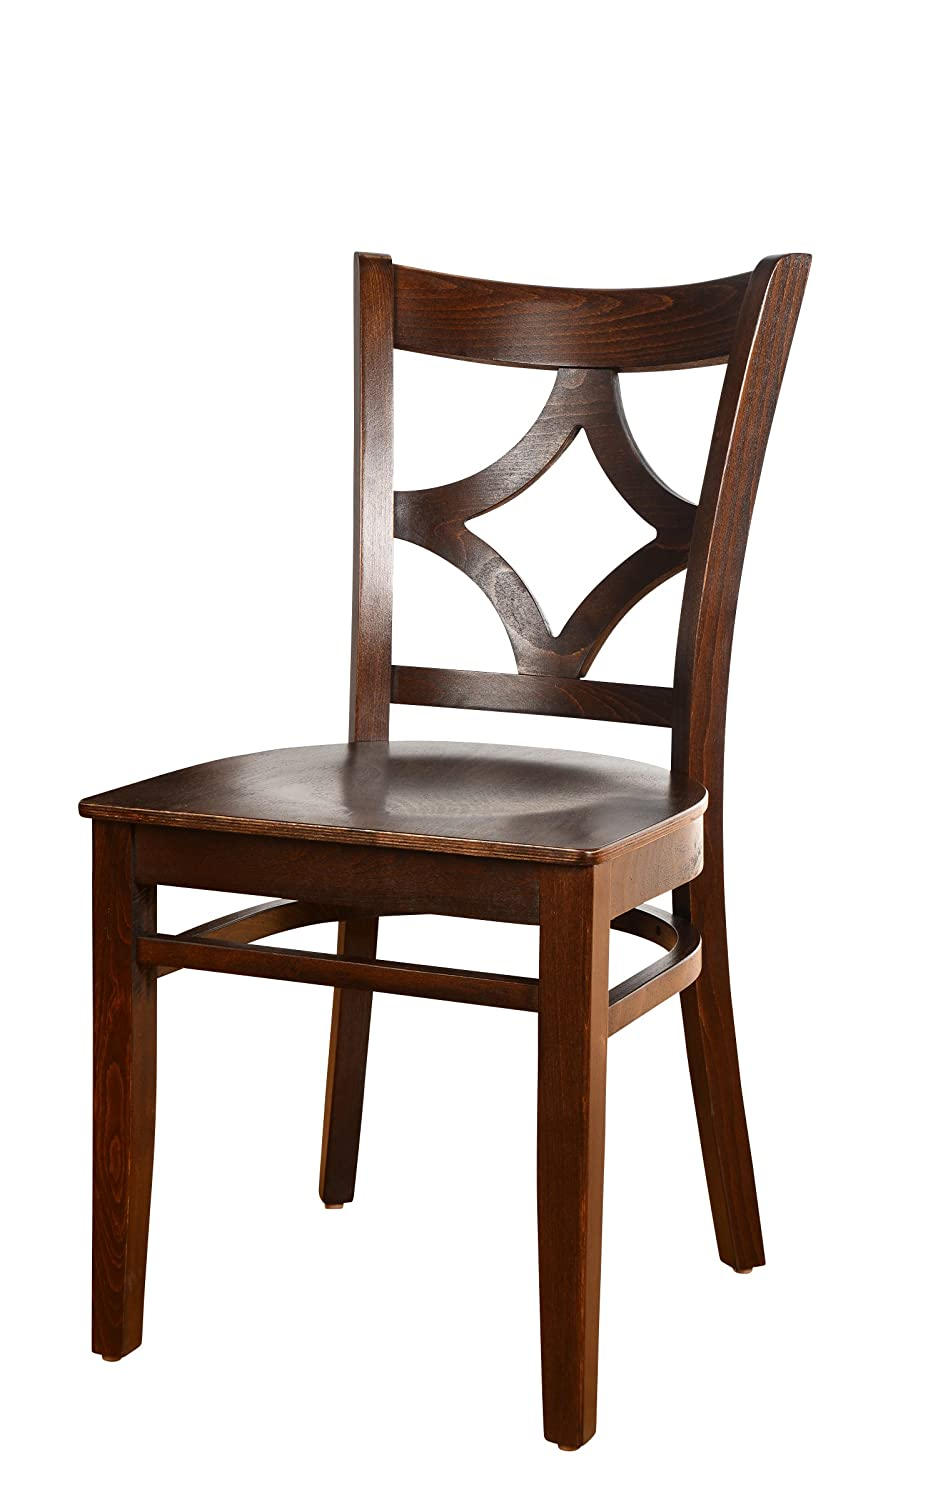 Beechwood Mountain BSD-23SS-W Solid Beech Wood Side Chairs in Walnut with wood seat for Kitchen and dining, set of 2